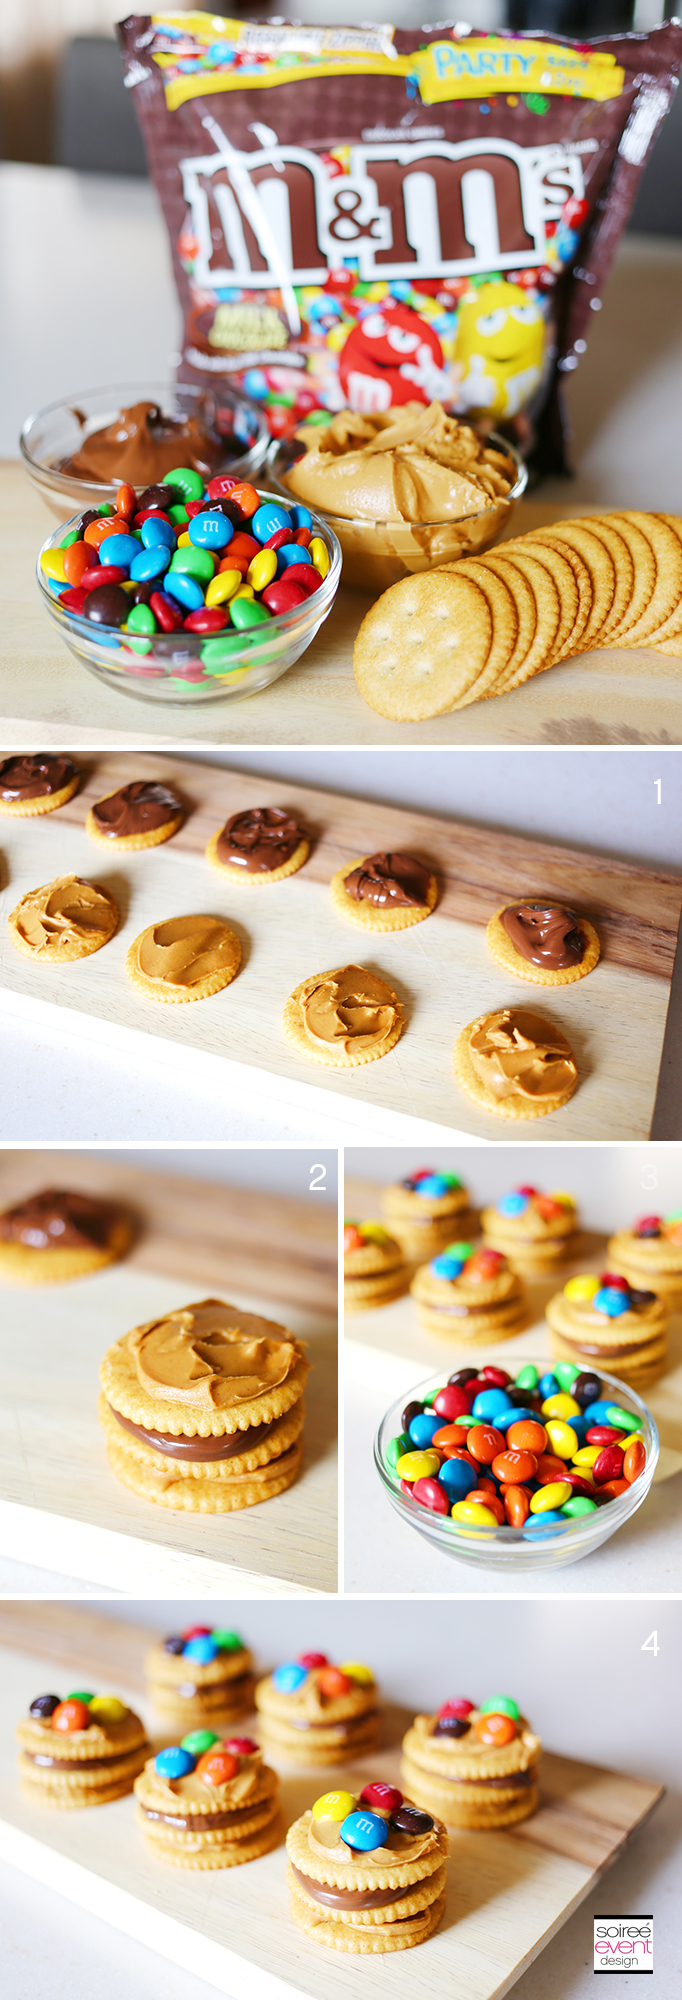 Chocolate Peanut Butter M&Ms Cracker Stackers Recipe